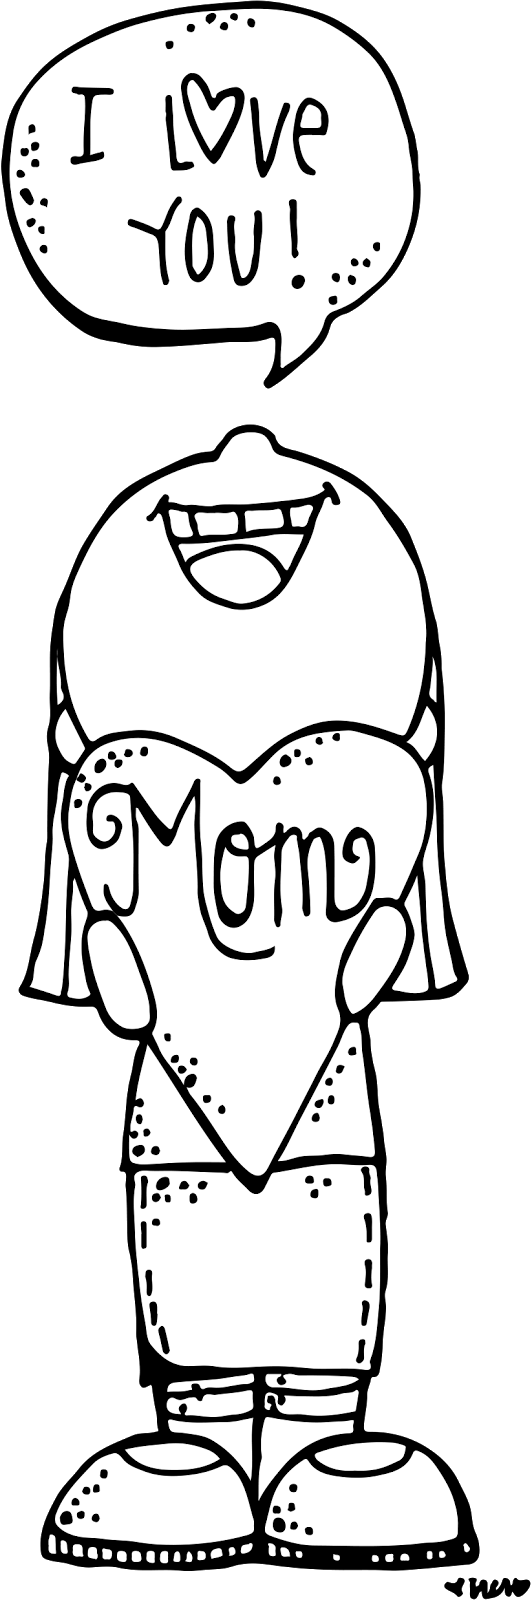 Mothers clipart coloring. Melonheadz lds illustrating mother